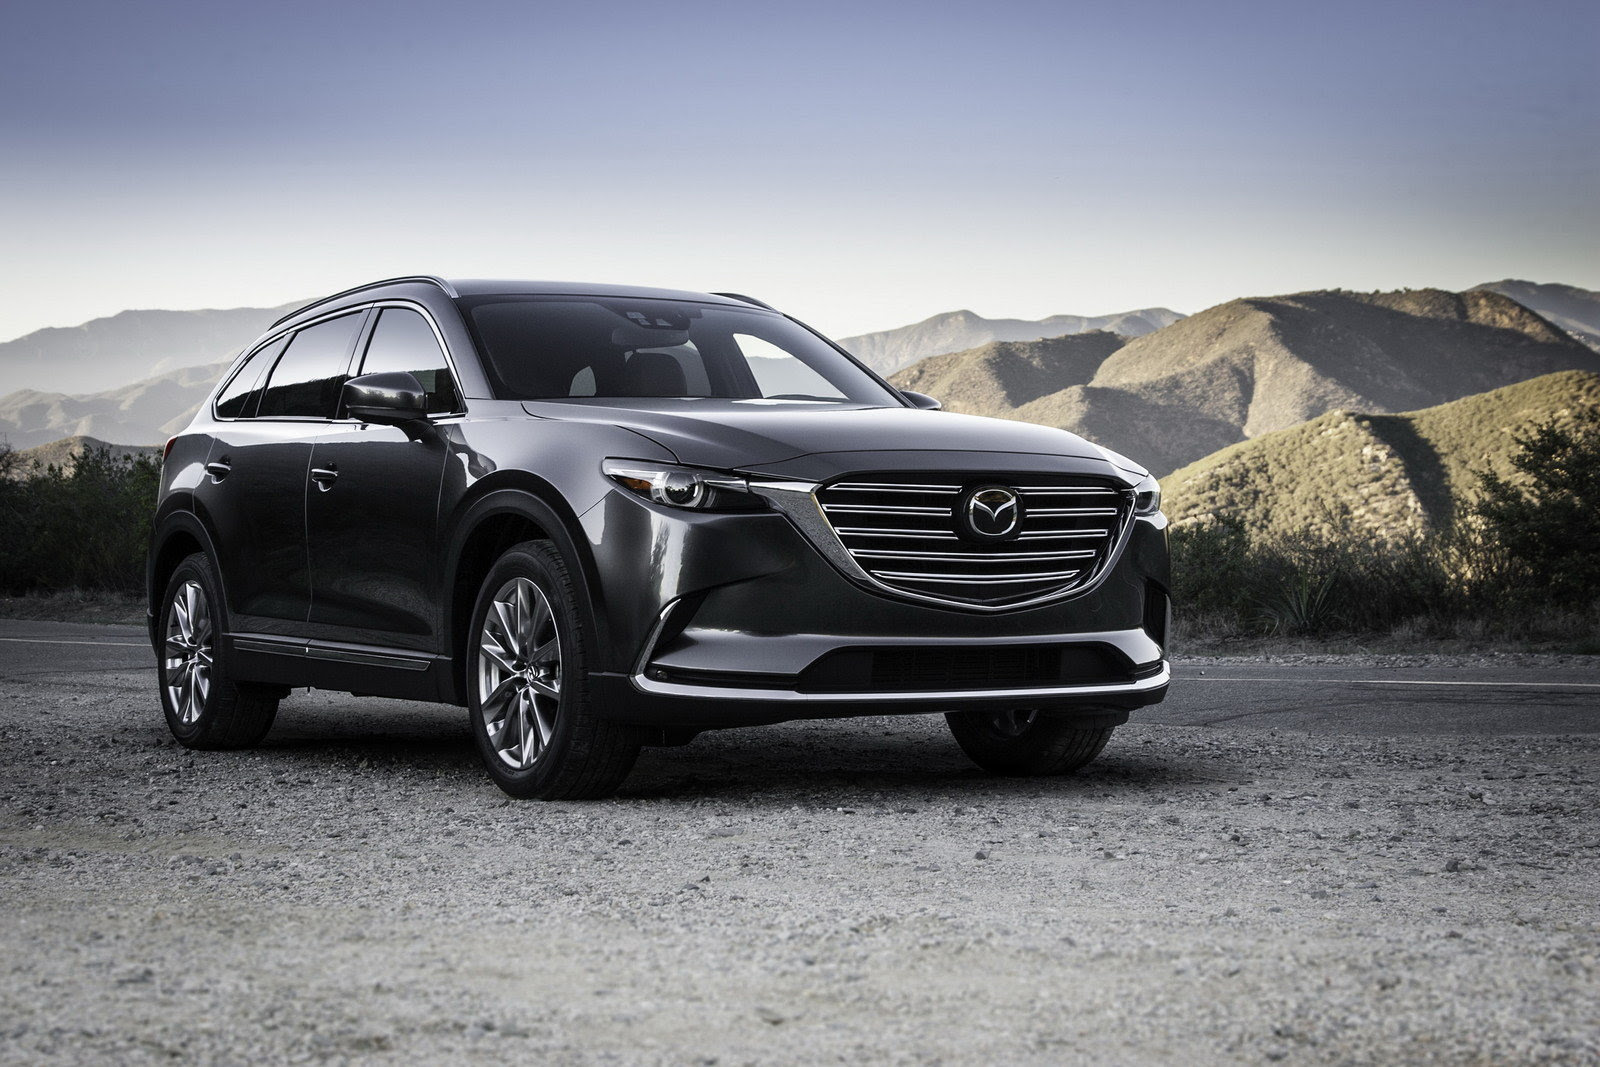 2017 Mazda CX-9 - Picture 656347 | car review @ Top Speed